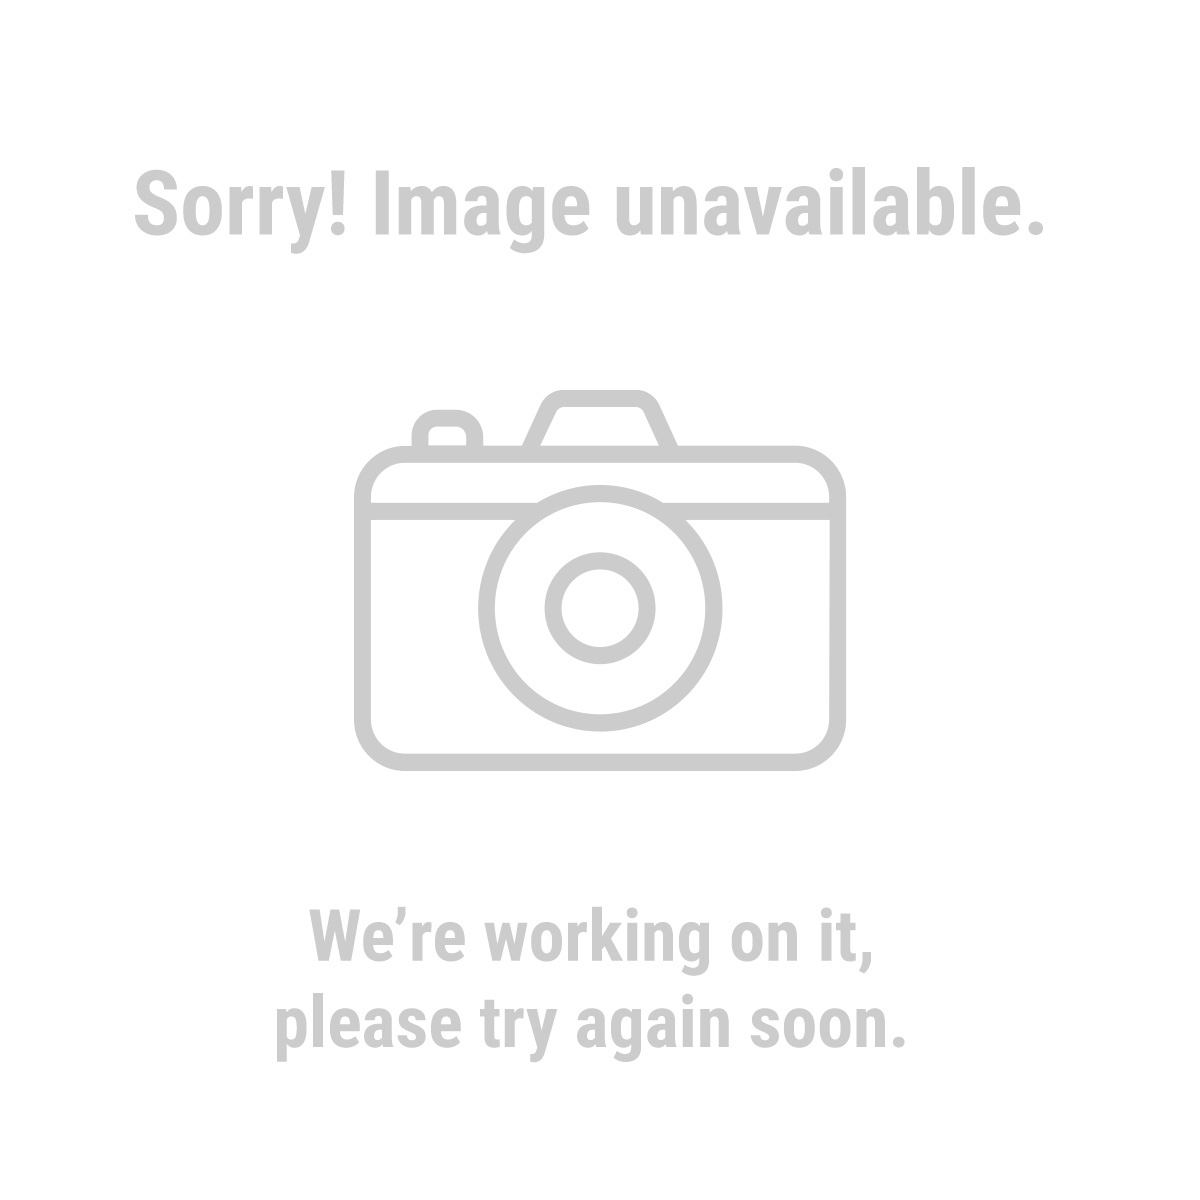 Trigger Sprayers Product